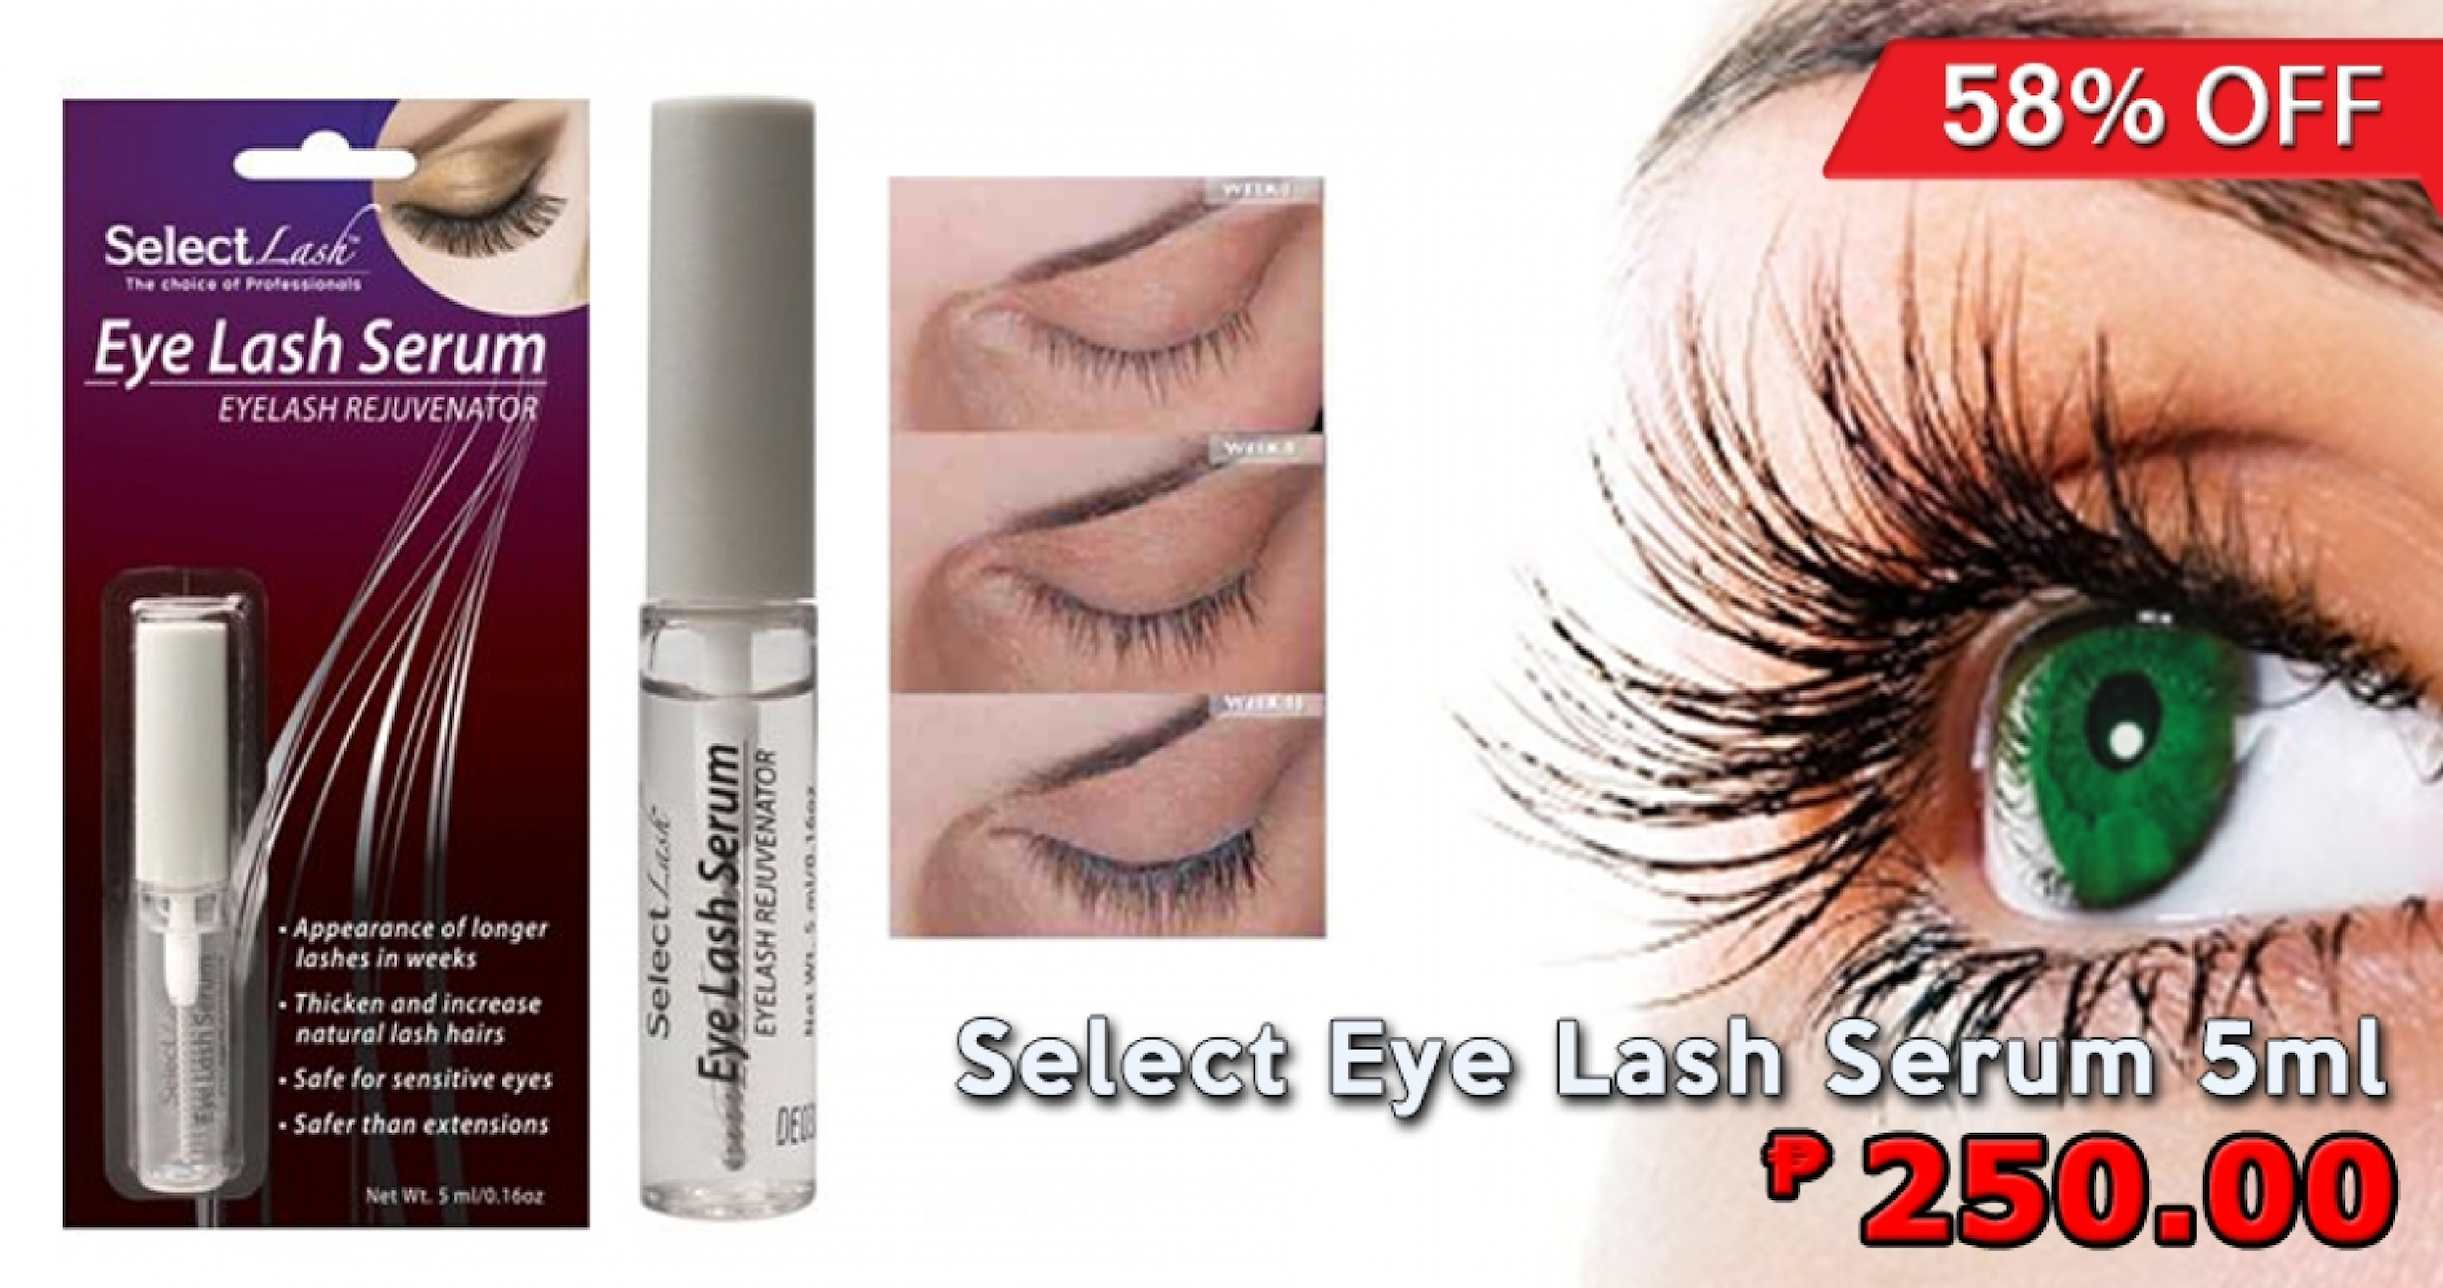 Calamo Select Eye Lash Serum 5ml For Only Php250 Available At